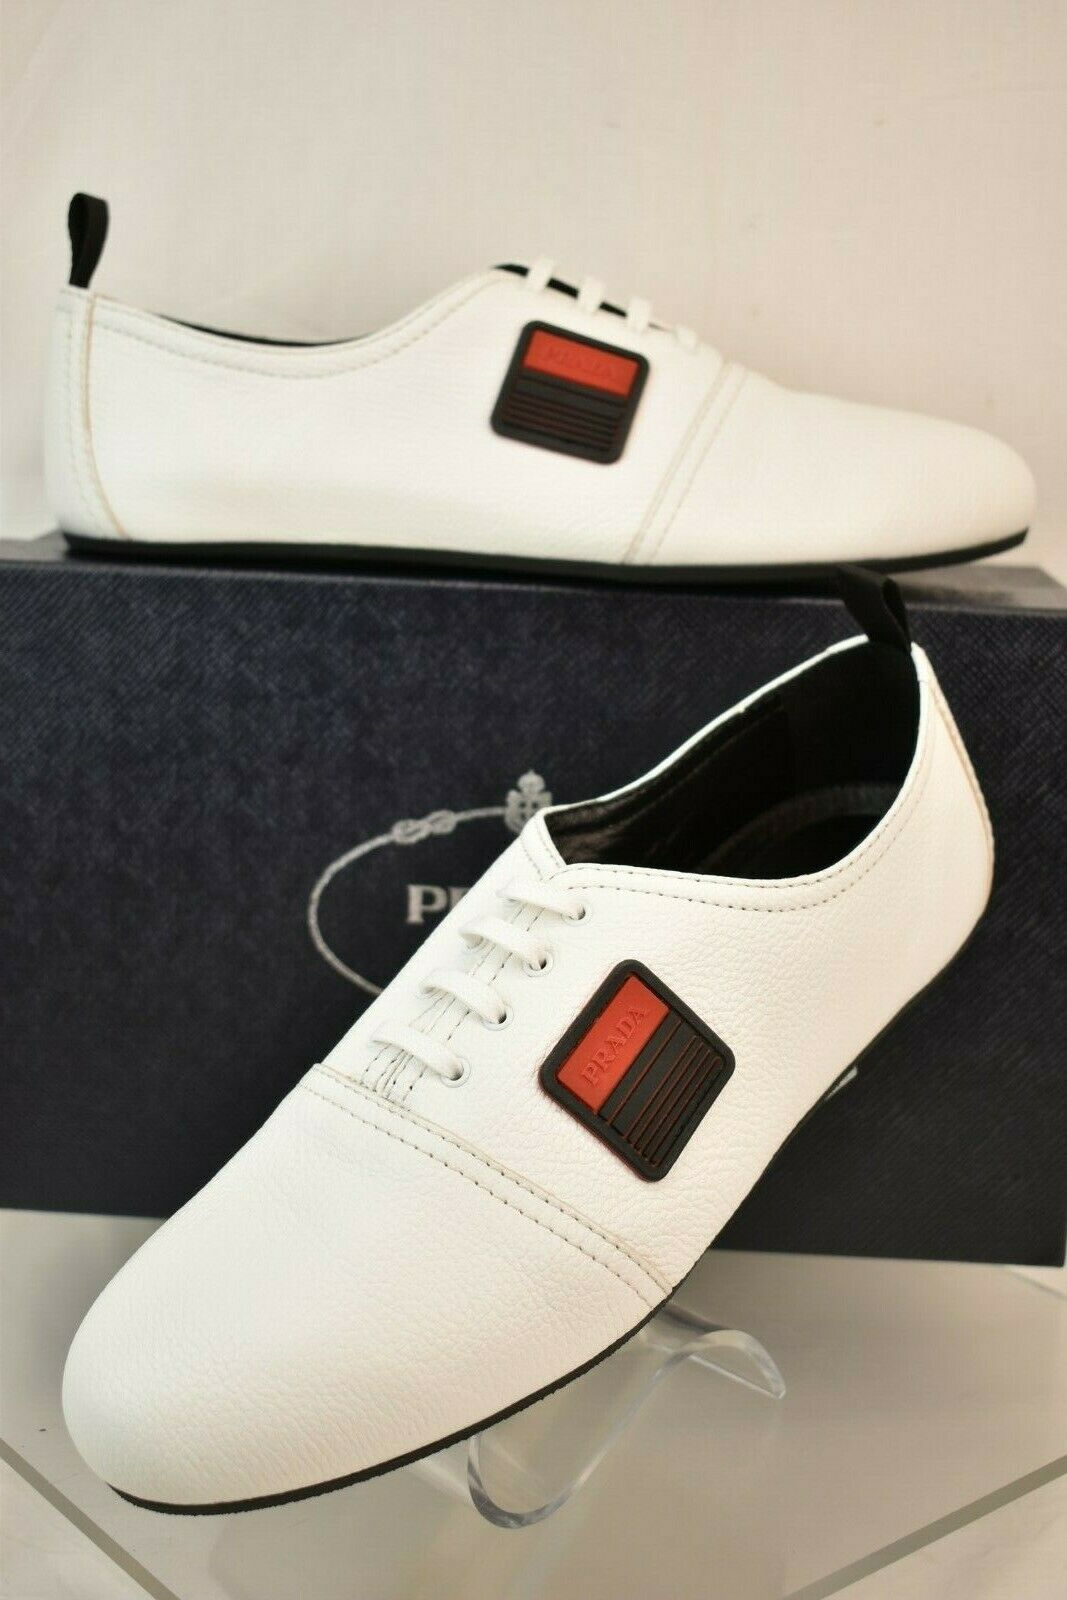 NIB PRADA bianca TEXTUrosso LEATHER LACE UP LOGO LOW TOP scarpe da ginnastica 10 US 11 ITALY